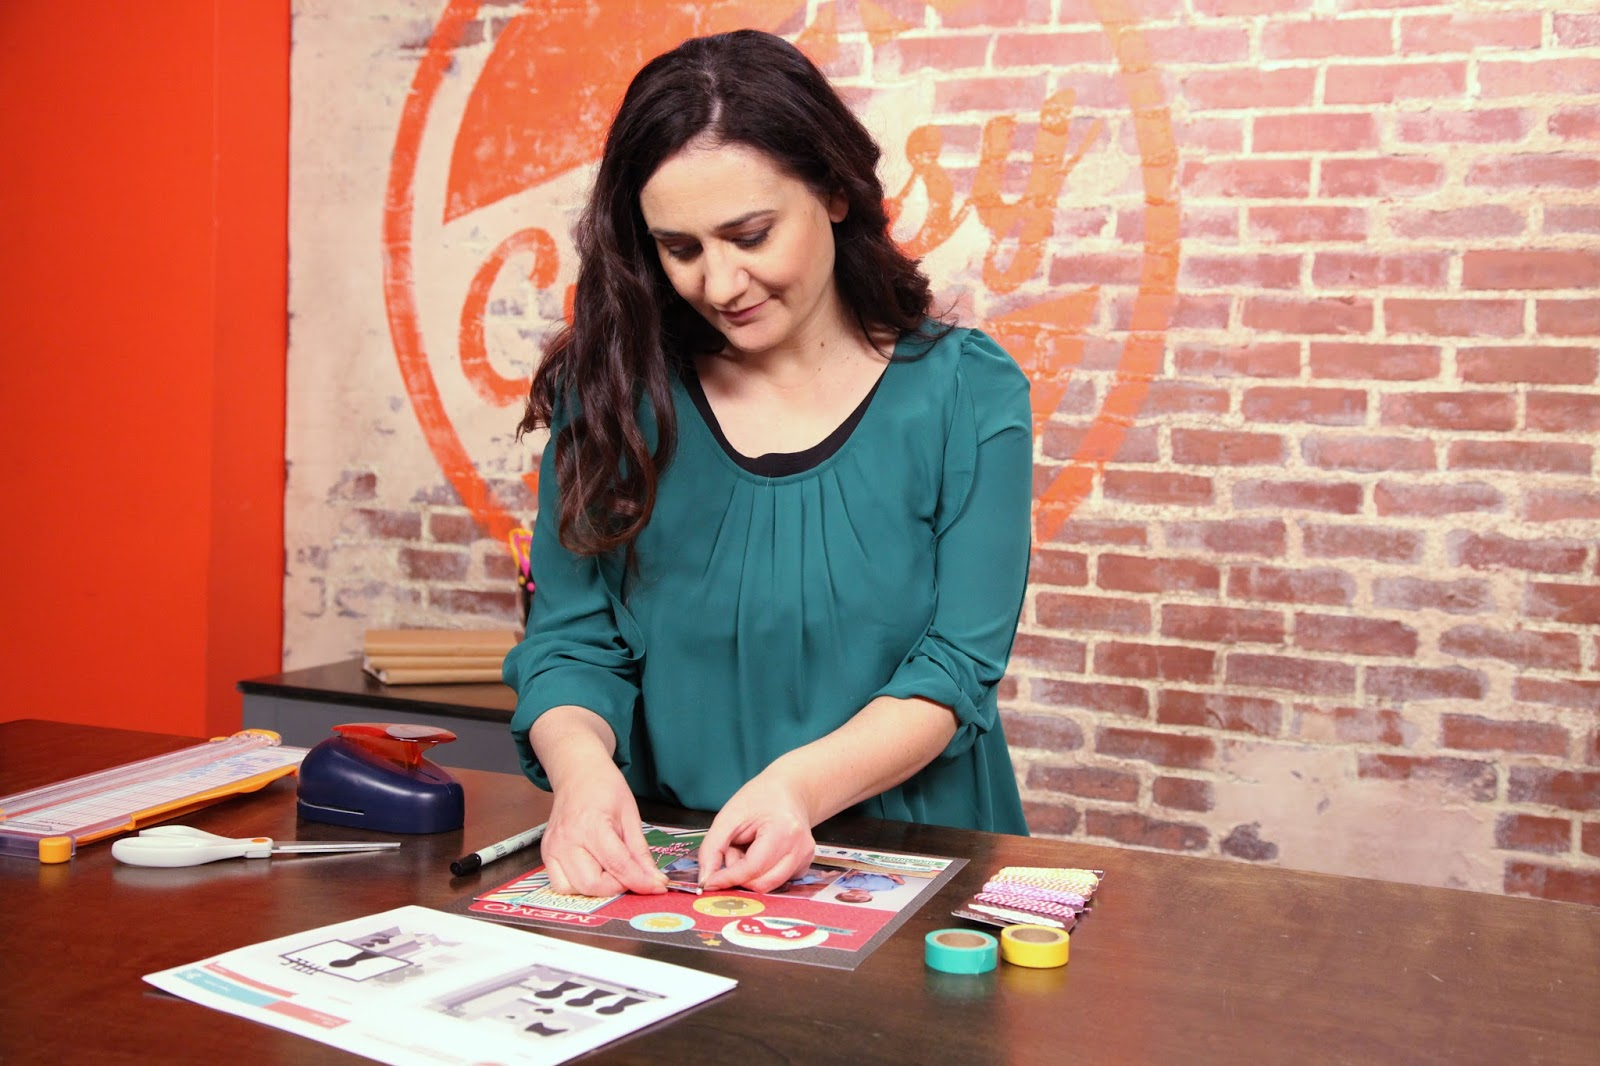 Scrapbook Design and Storytelling: Beyond the Basics Craftsy Scrapbooking Class taught by Jen Gallacher